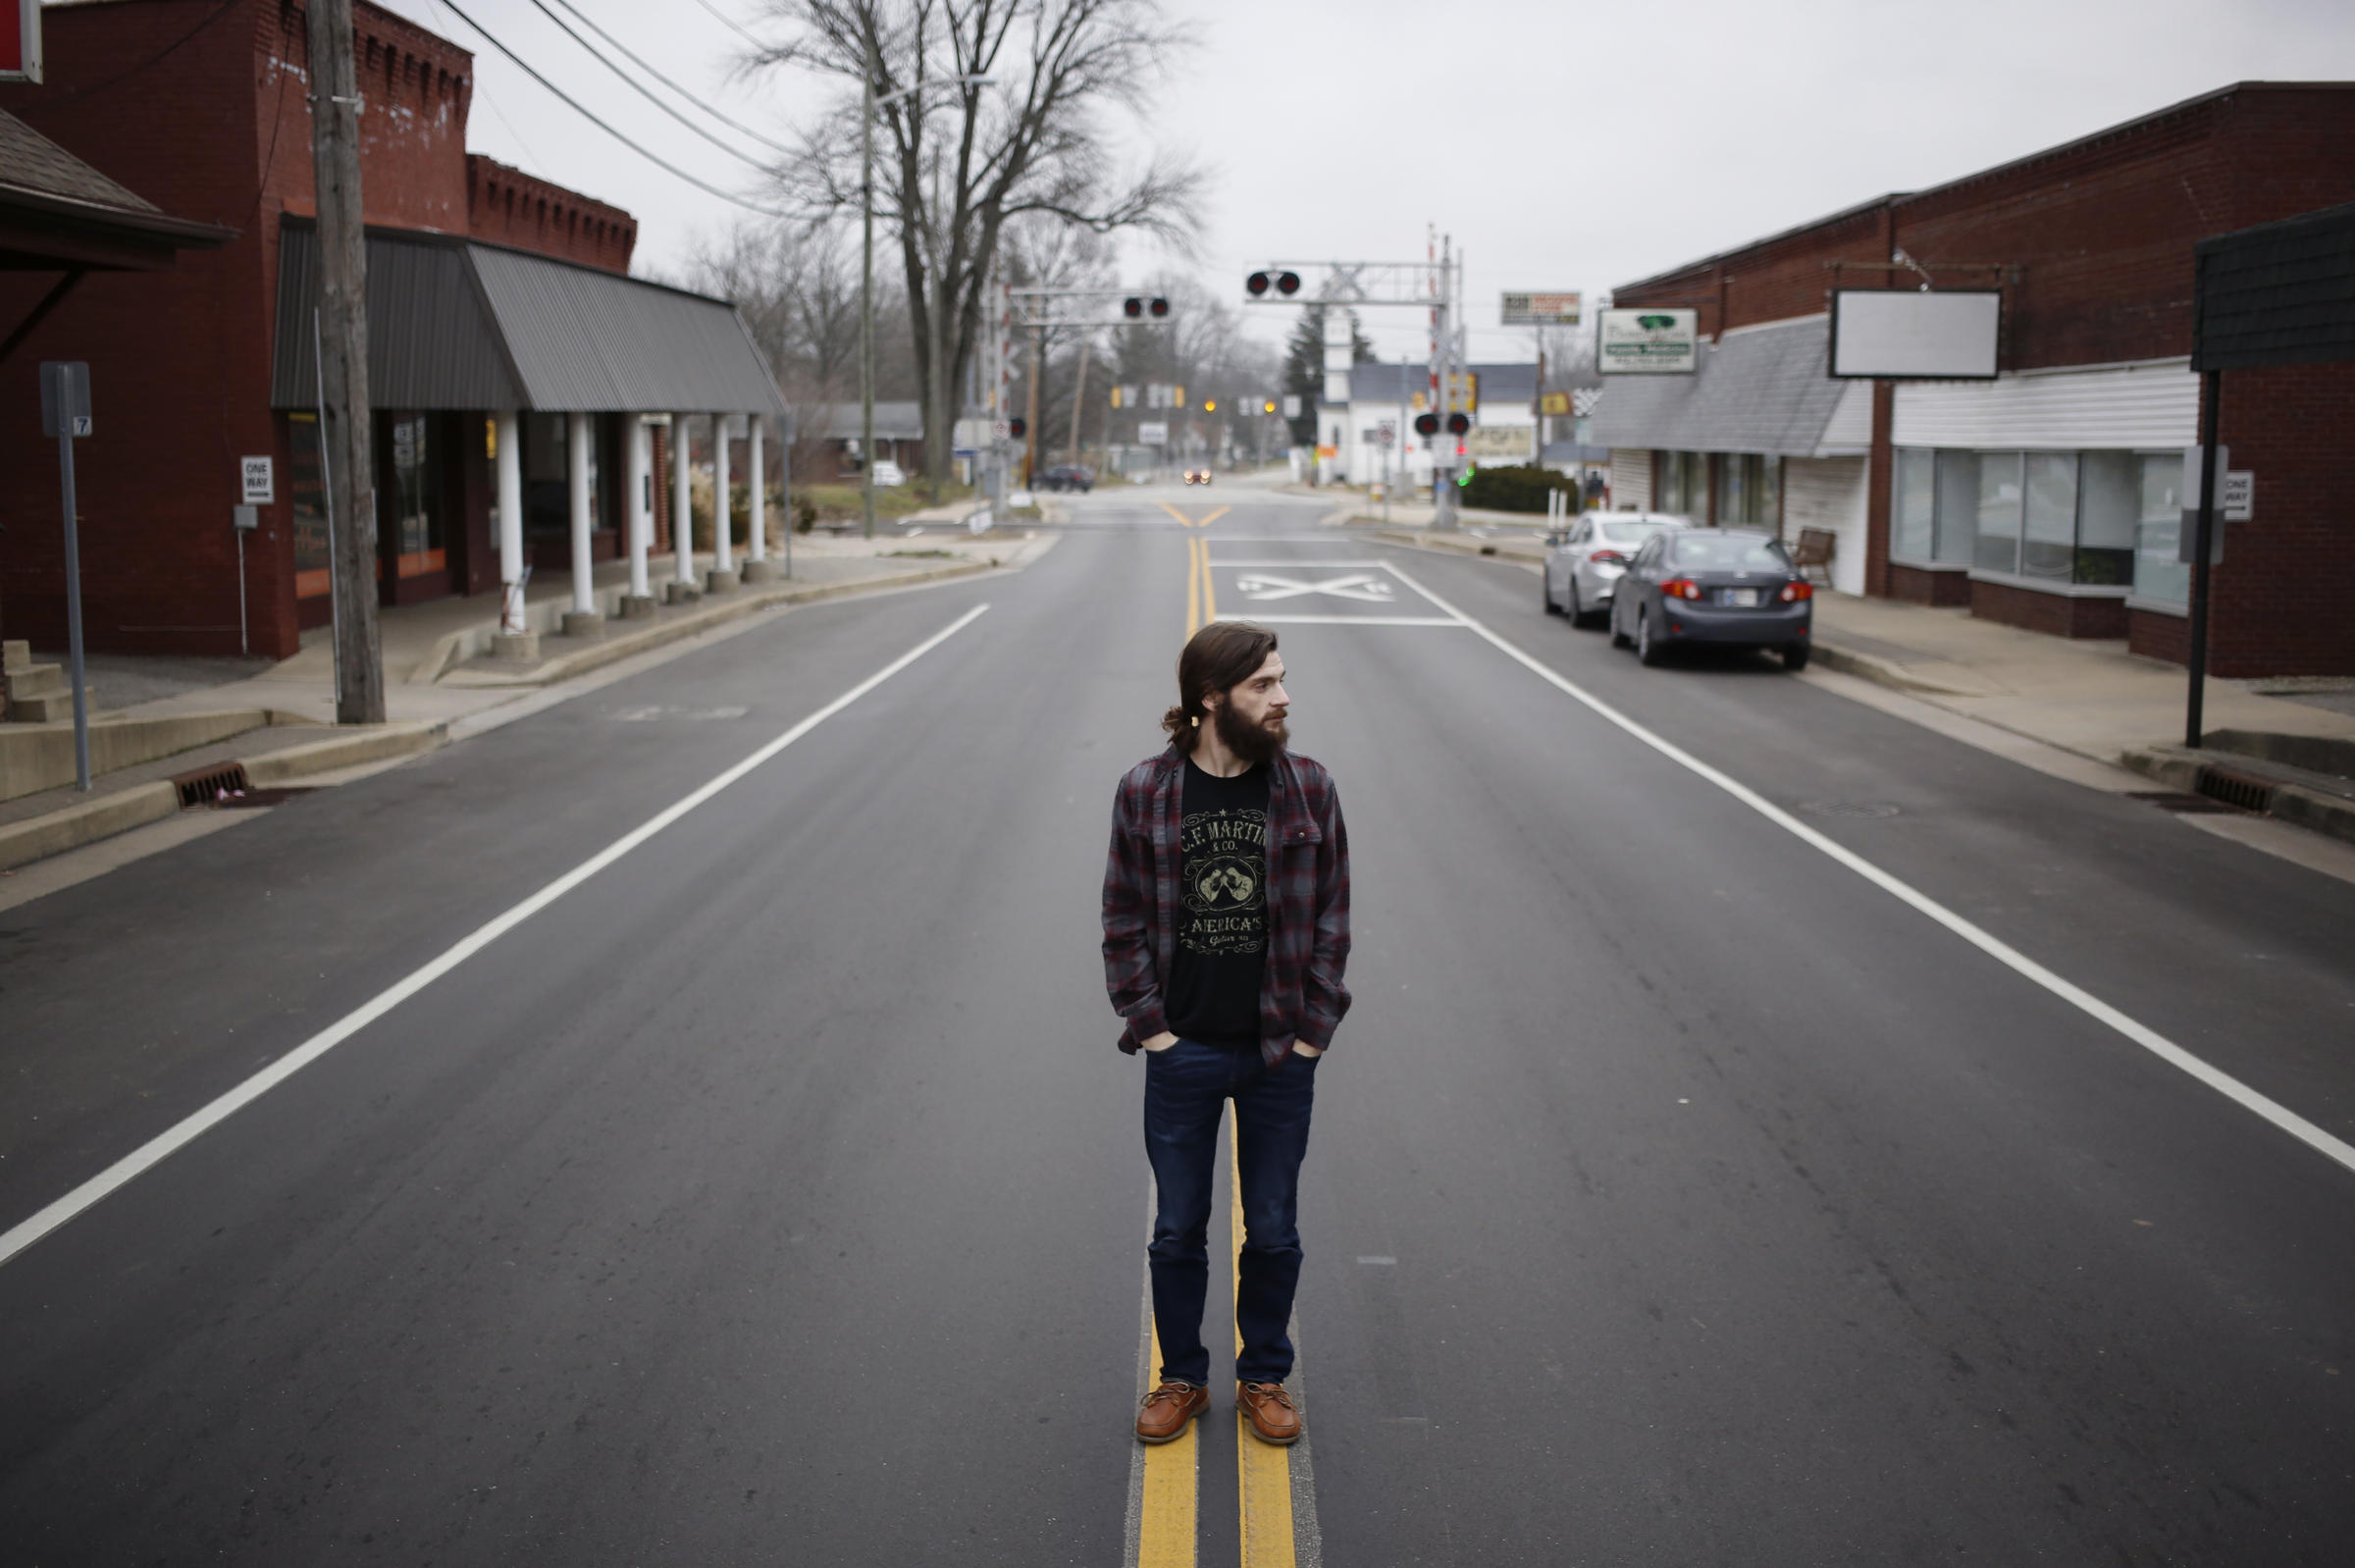 5 Years After Indiana's Historic HIV Outbreak, Many Rural Places Remain At Risk